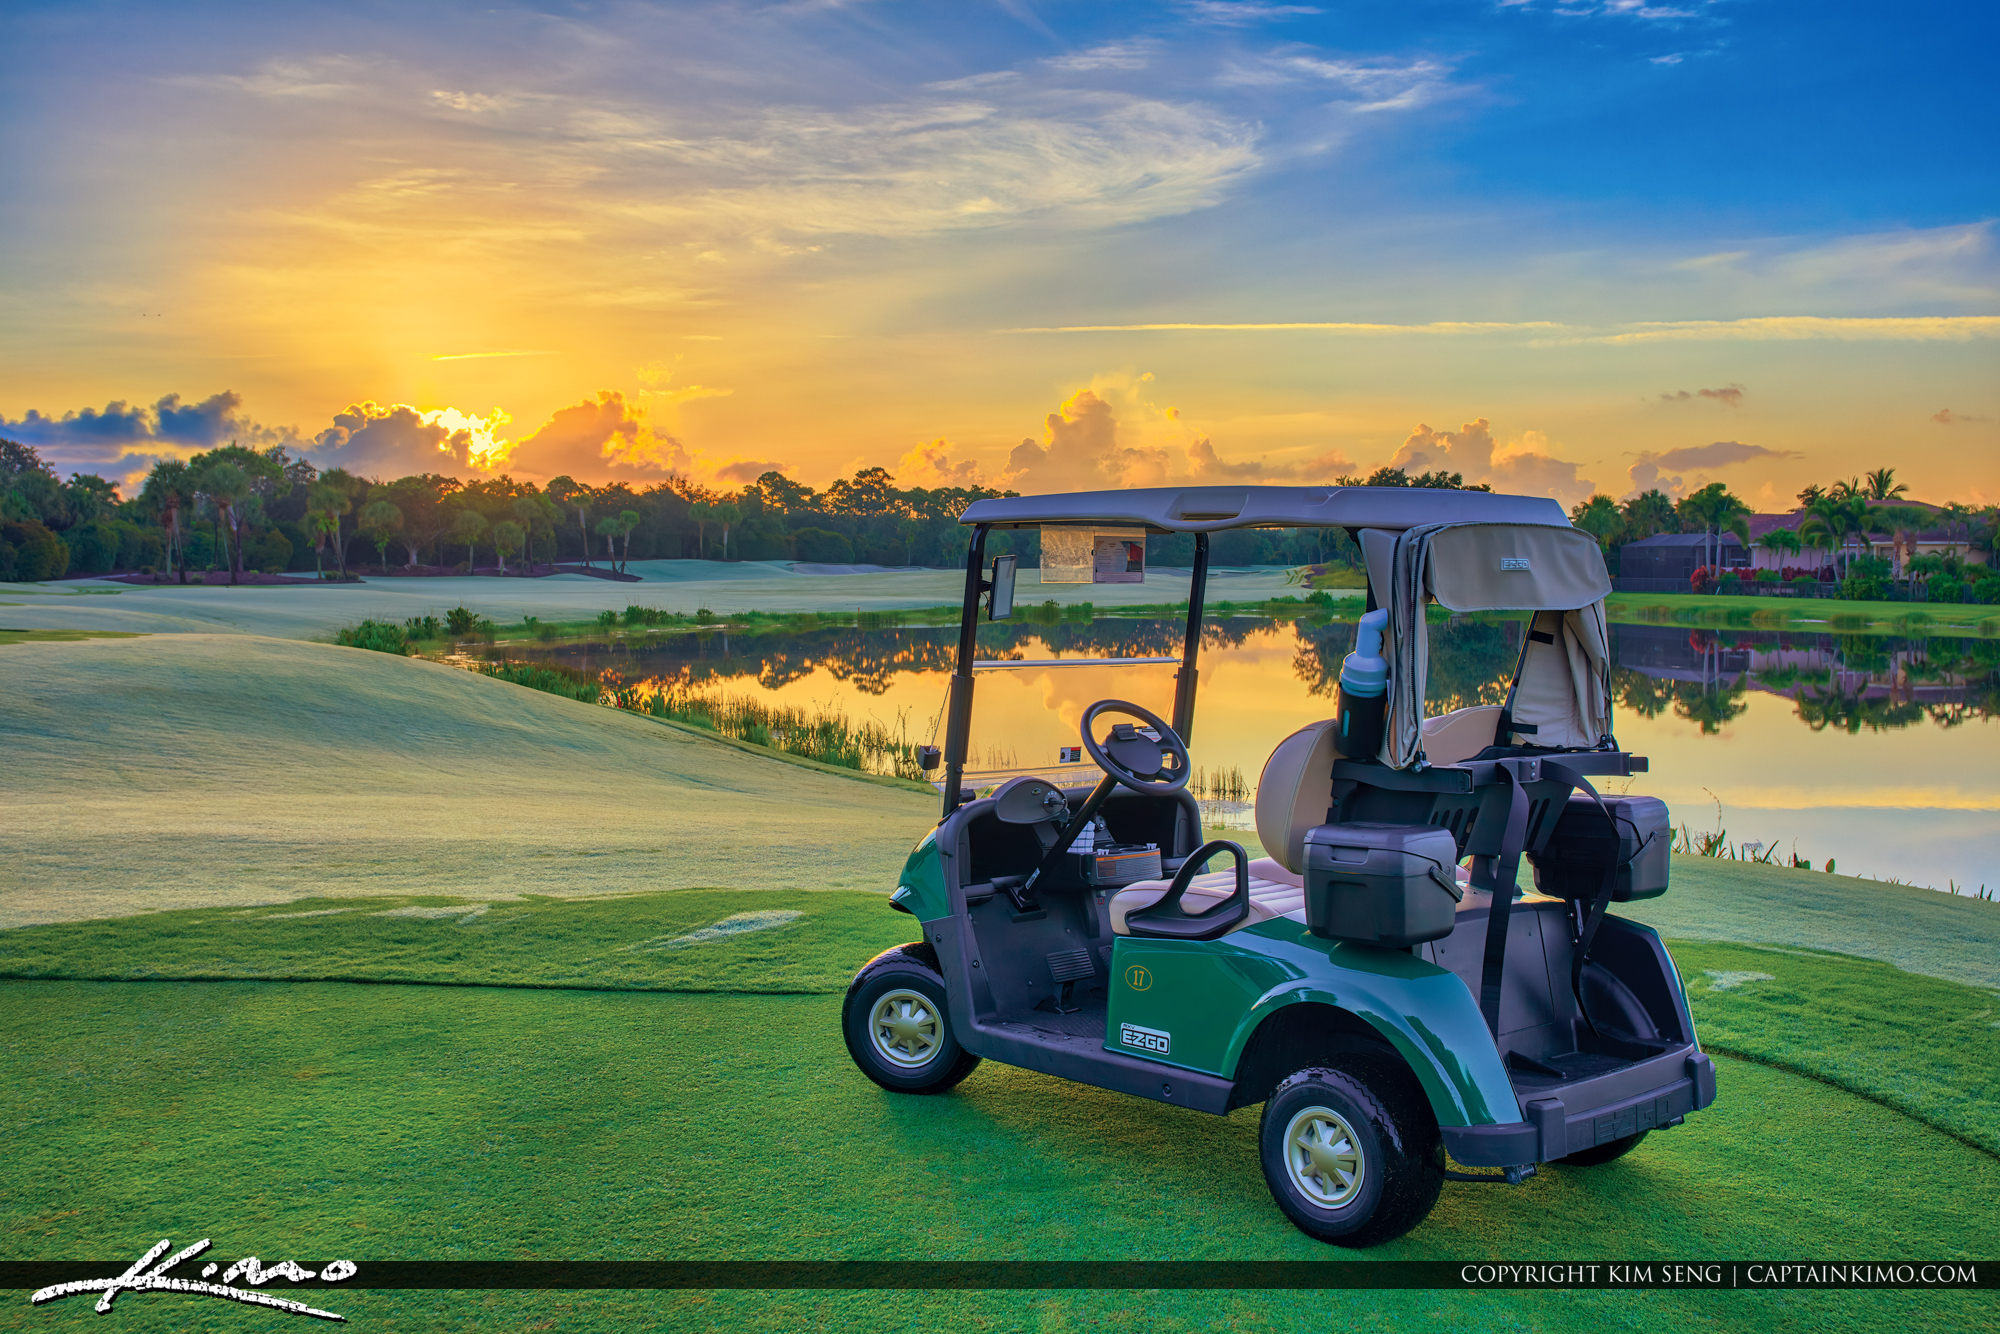 EZ Go Golf Cart at Mirasol Golf Course Sunrise in Palm Beach Gardens